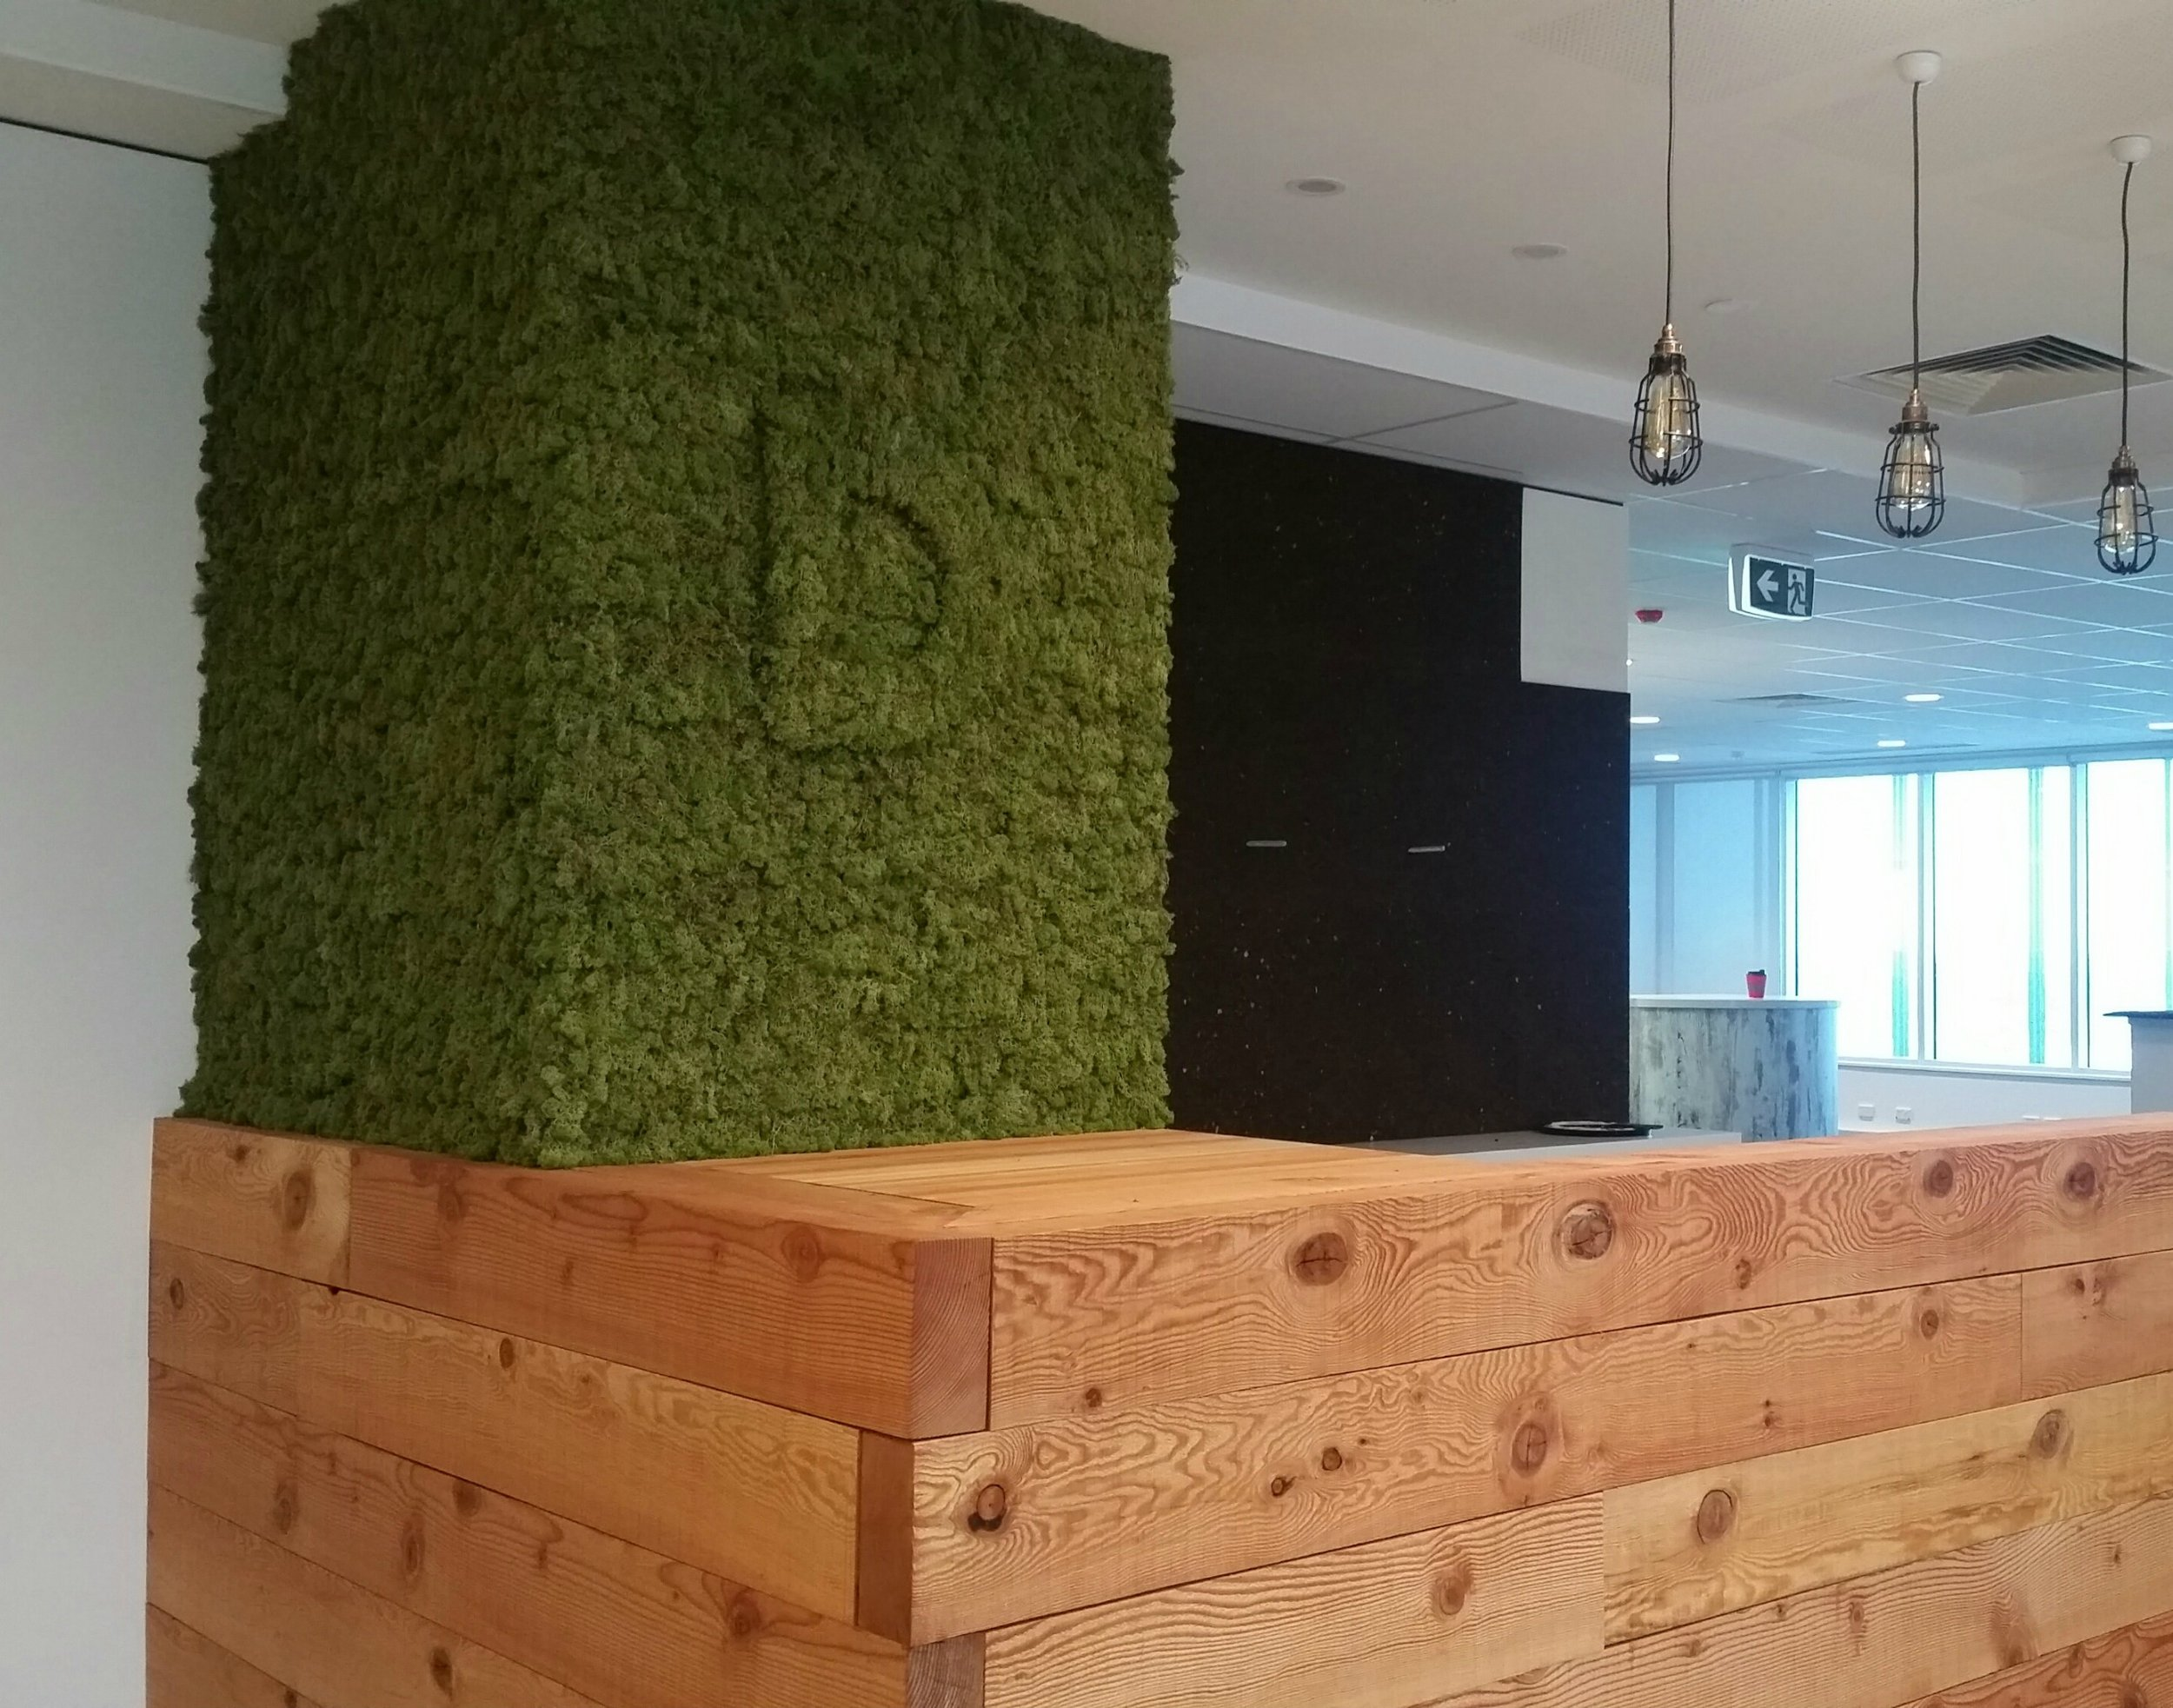 Moss Wall Project_Elite Constructions Discovery Parks.jpg